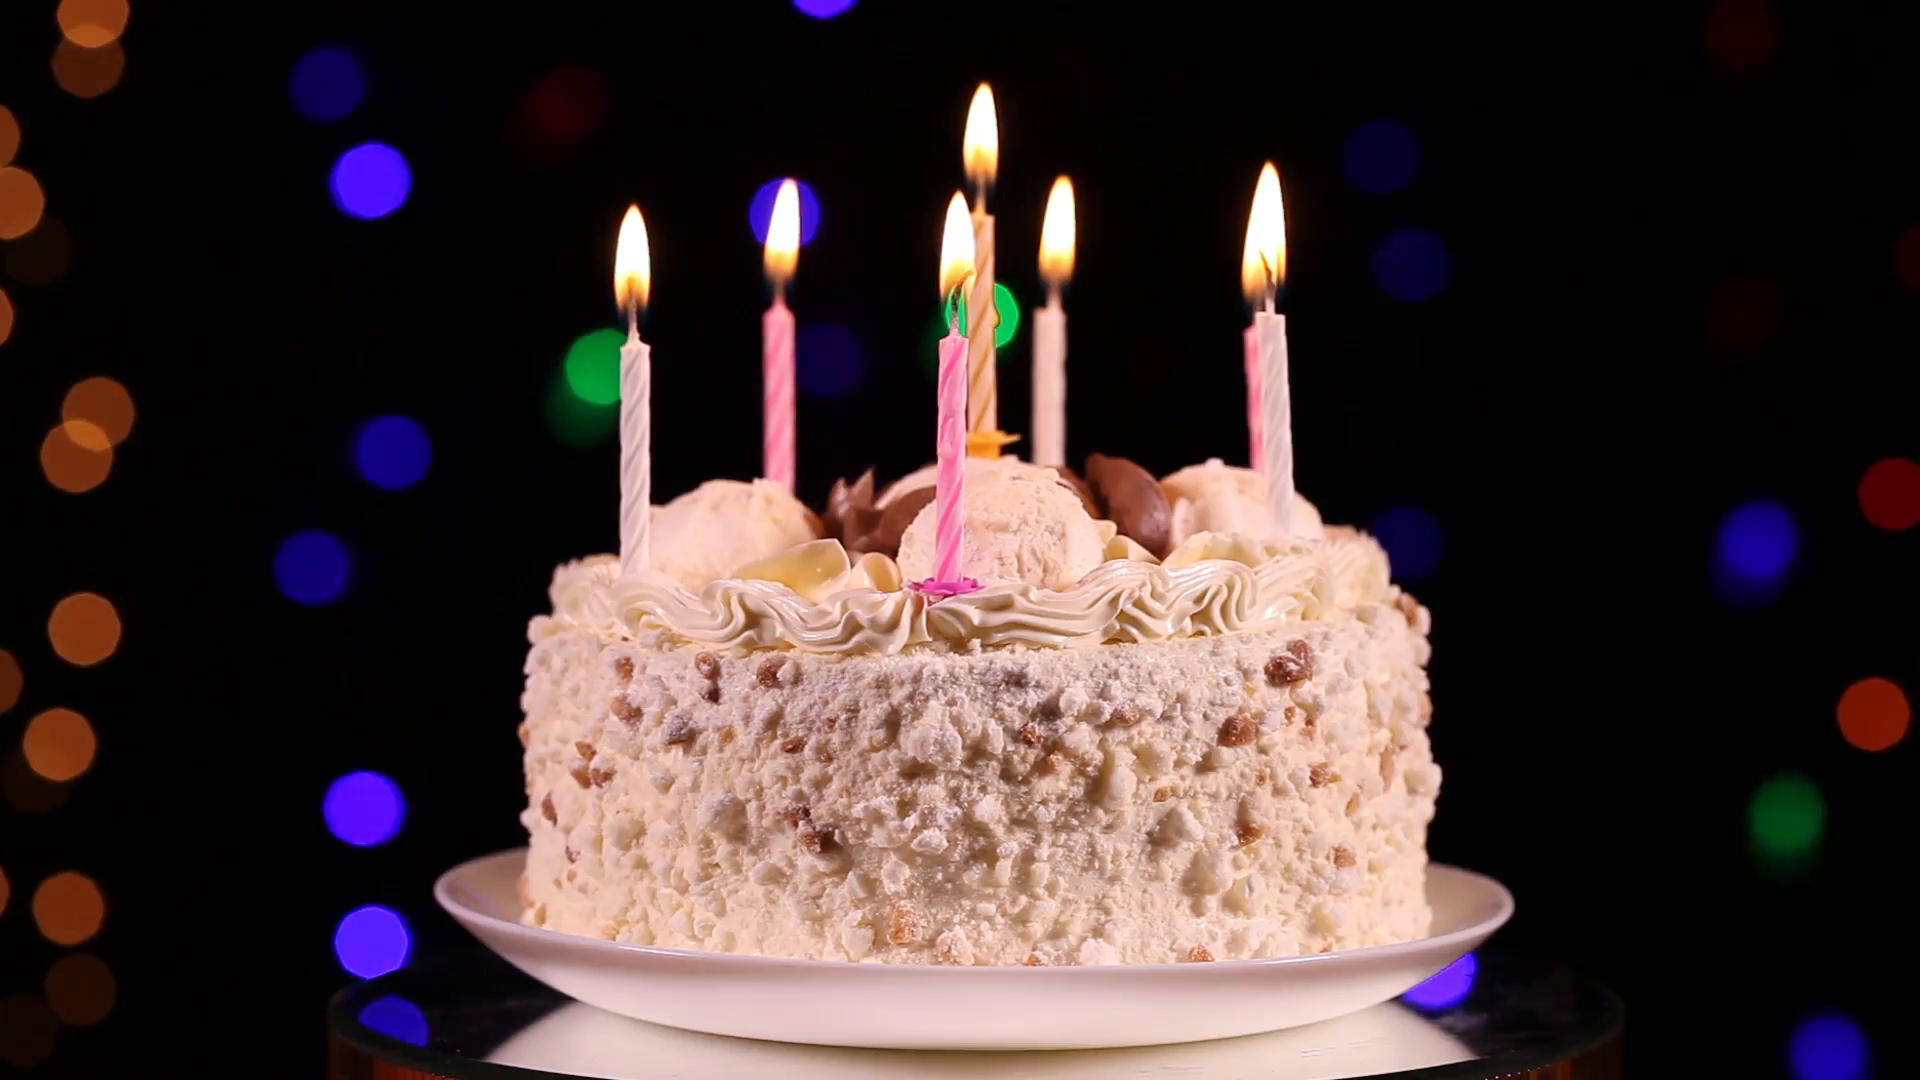 Birthday Cakes With Candles Happy Birthday Cake With Burning Candles Rotating In Front Of Black